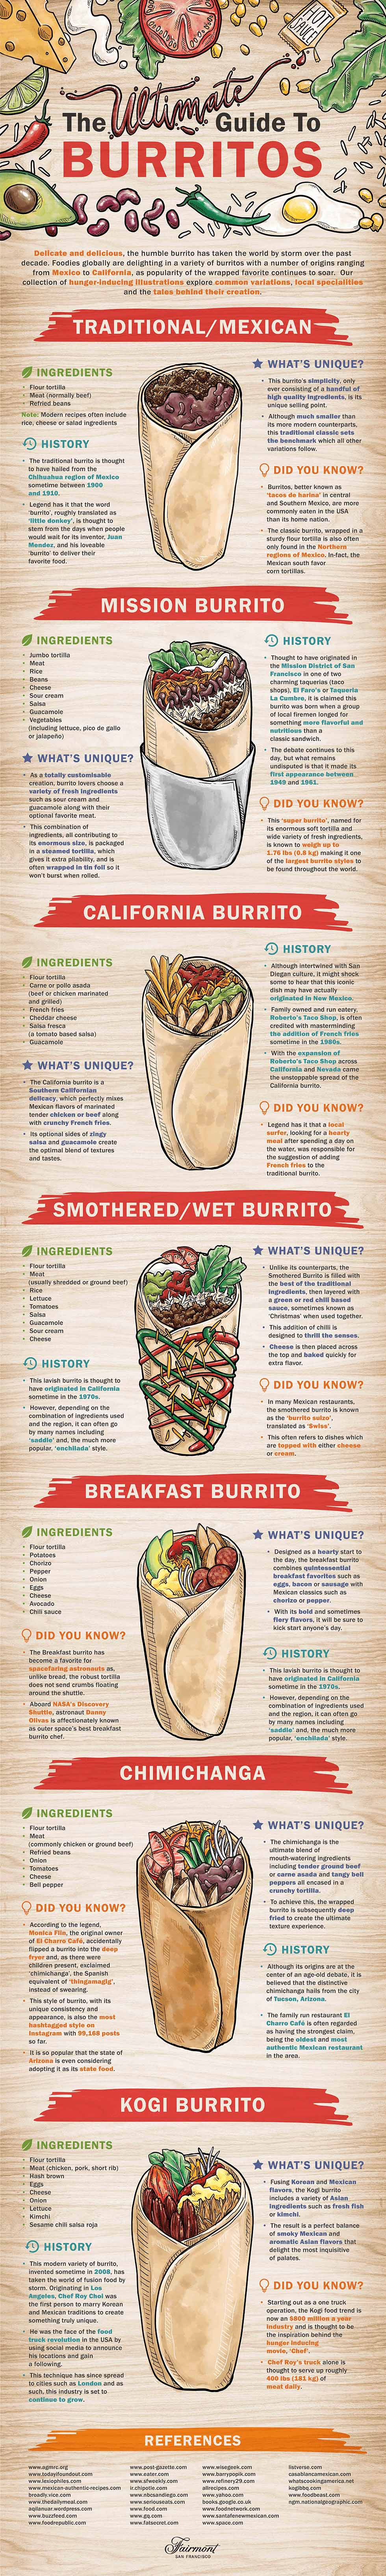 Ultimate Guide To Burritos